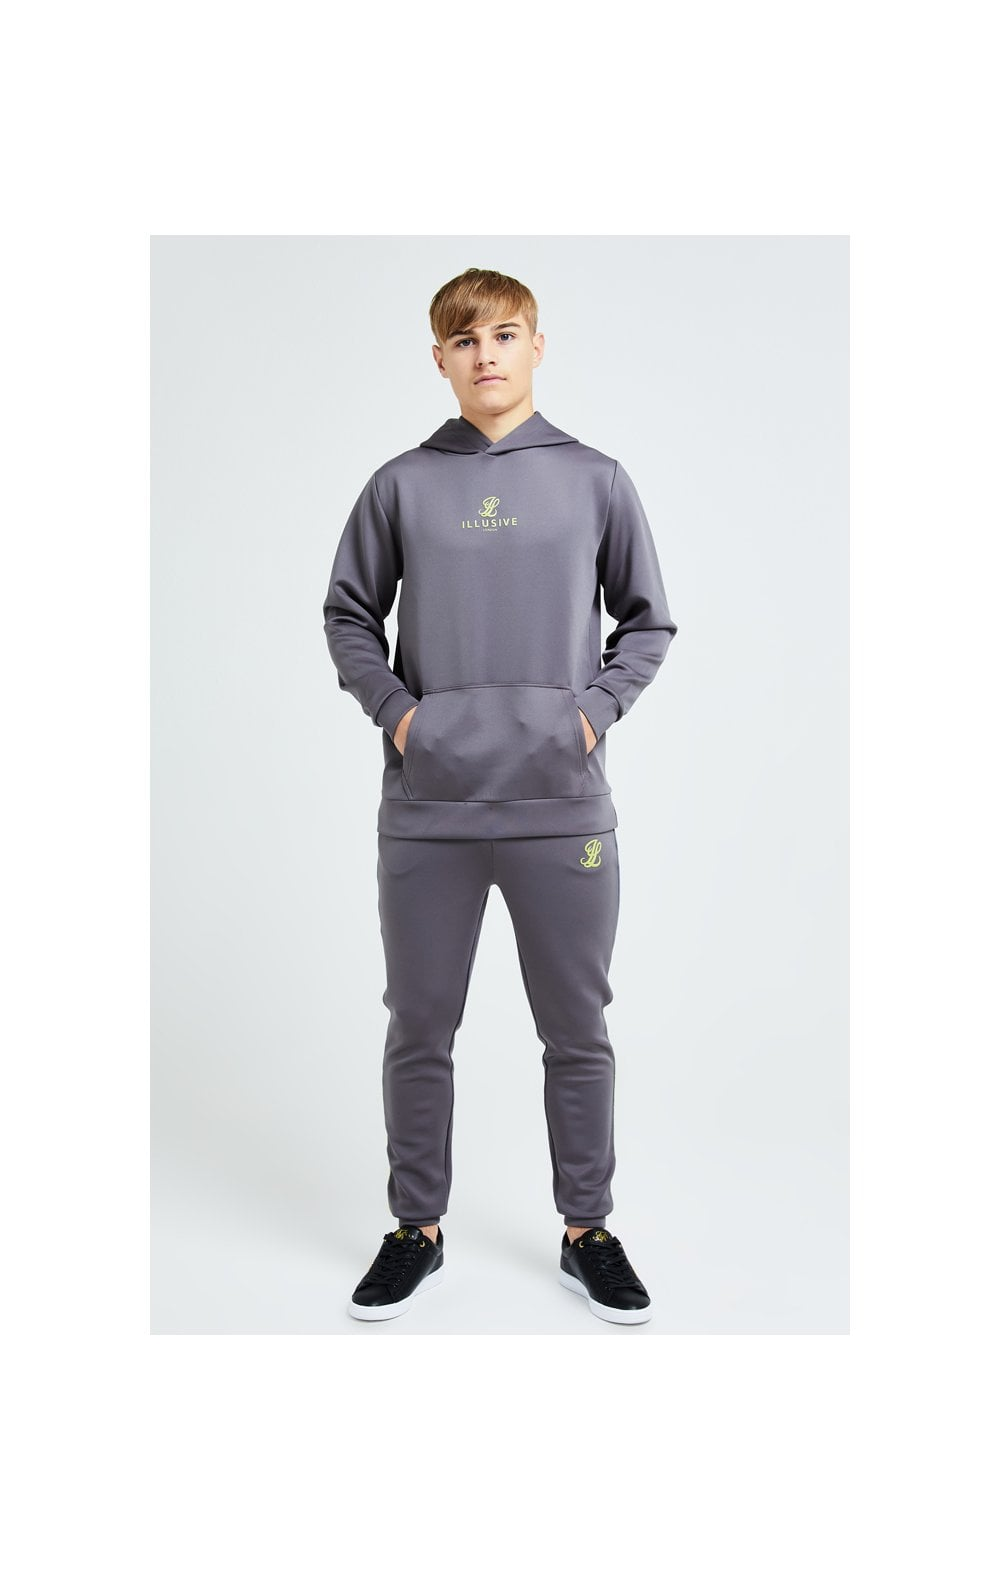 Illusive London Blaze Overhead Hoodie - Dark Grey & Lime (4)